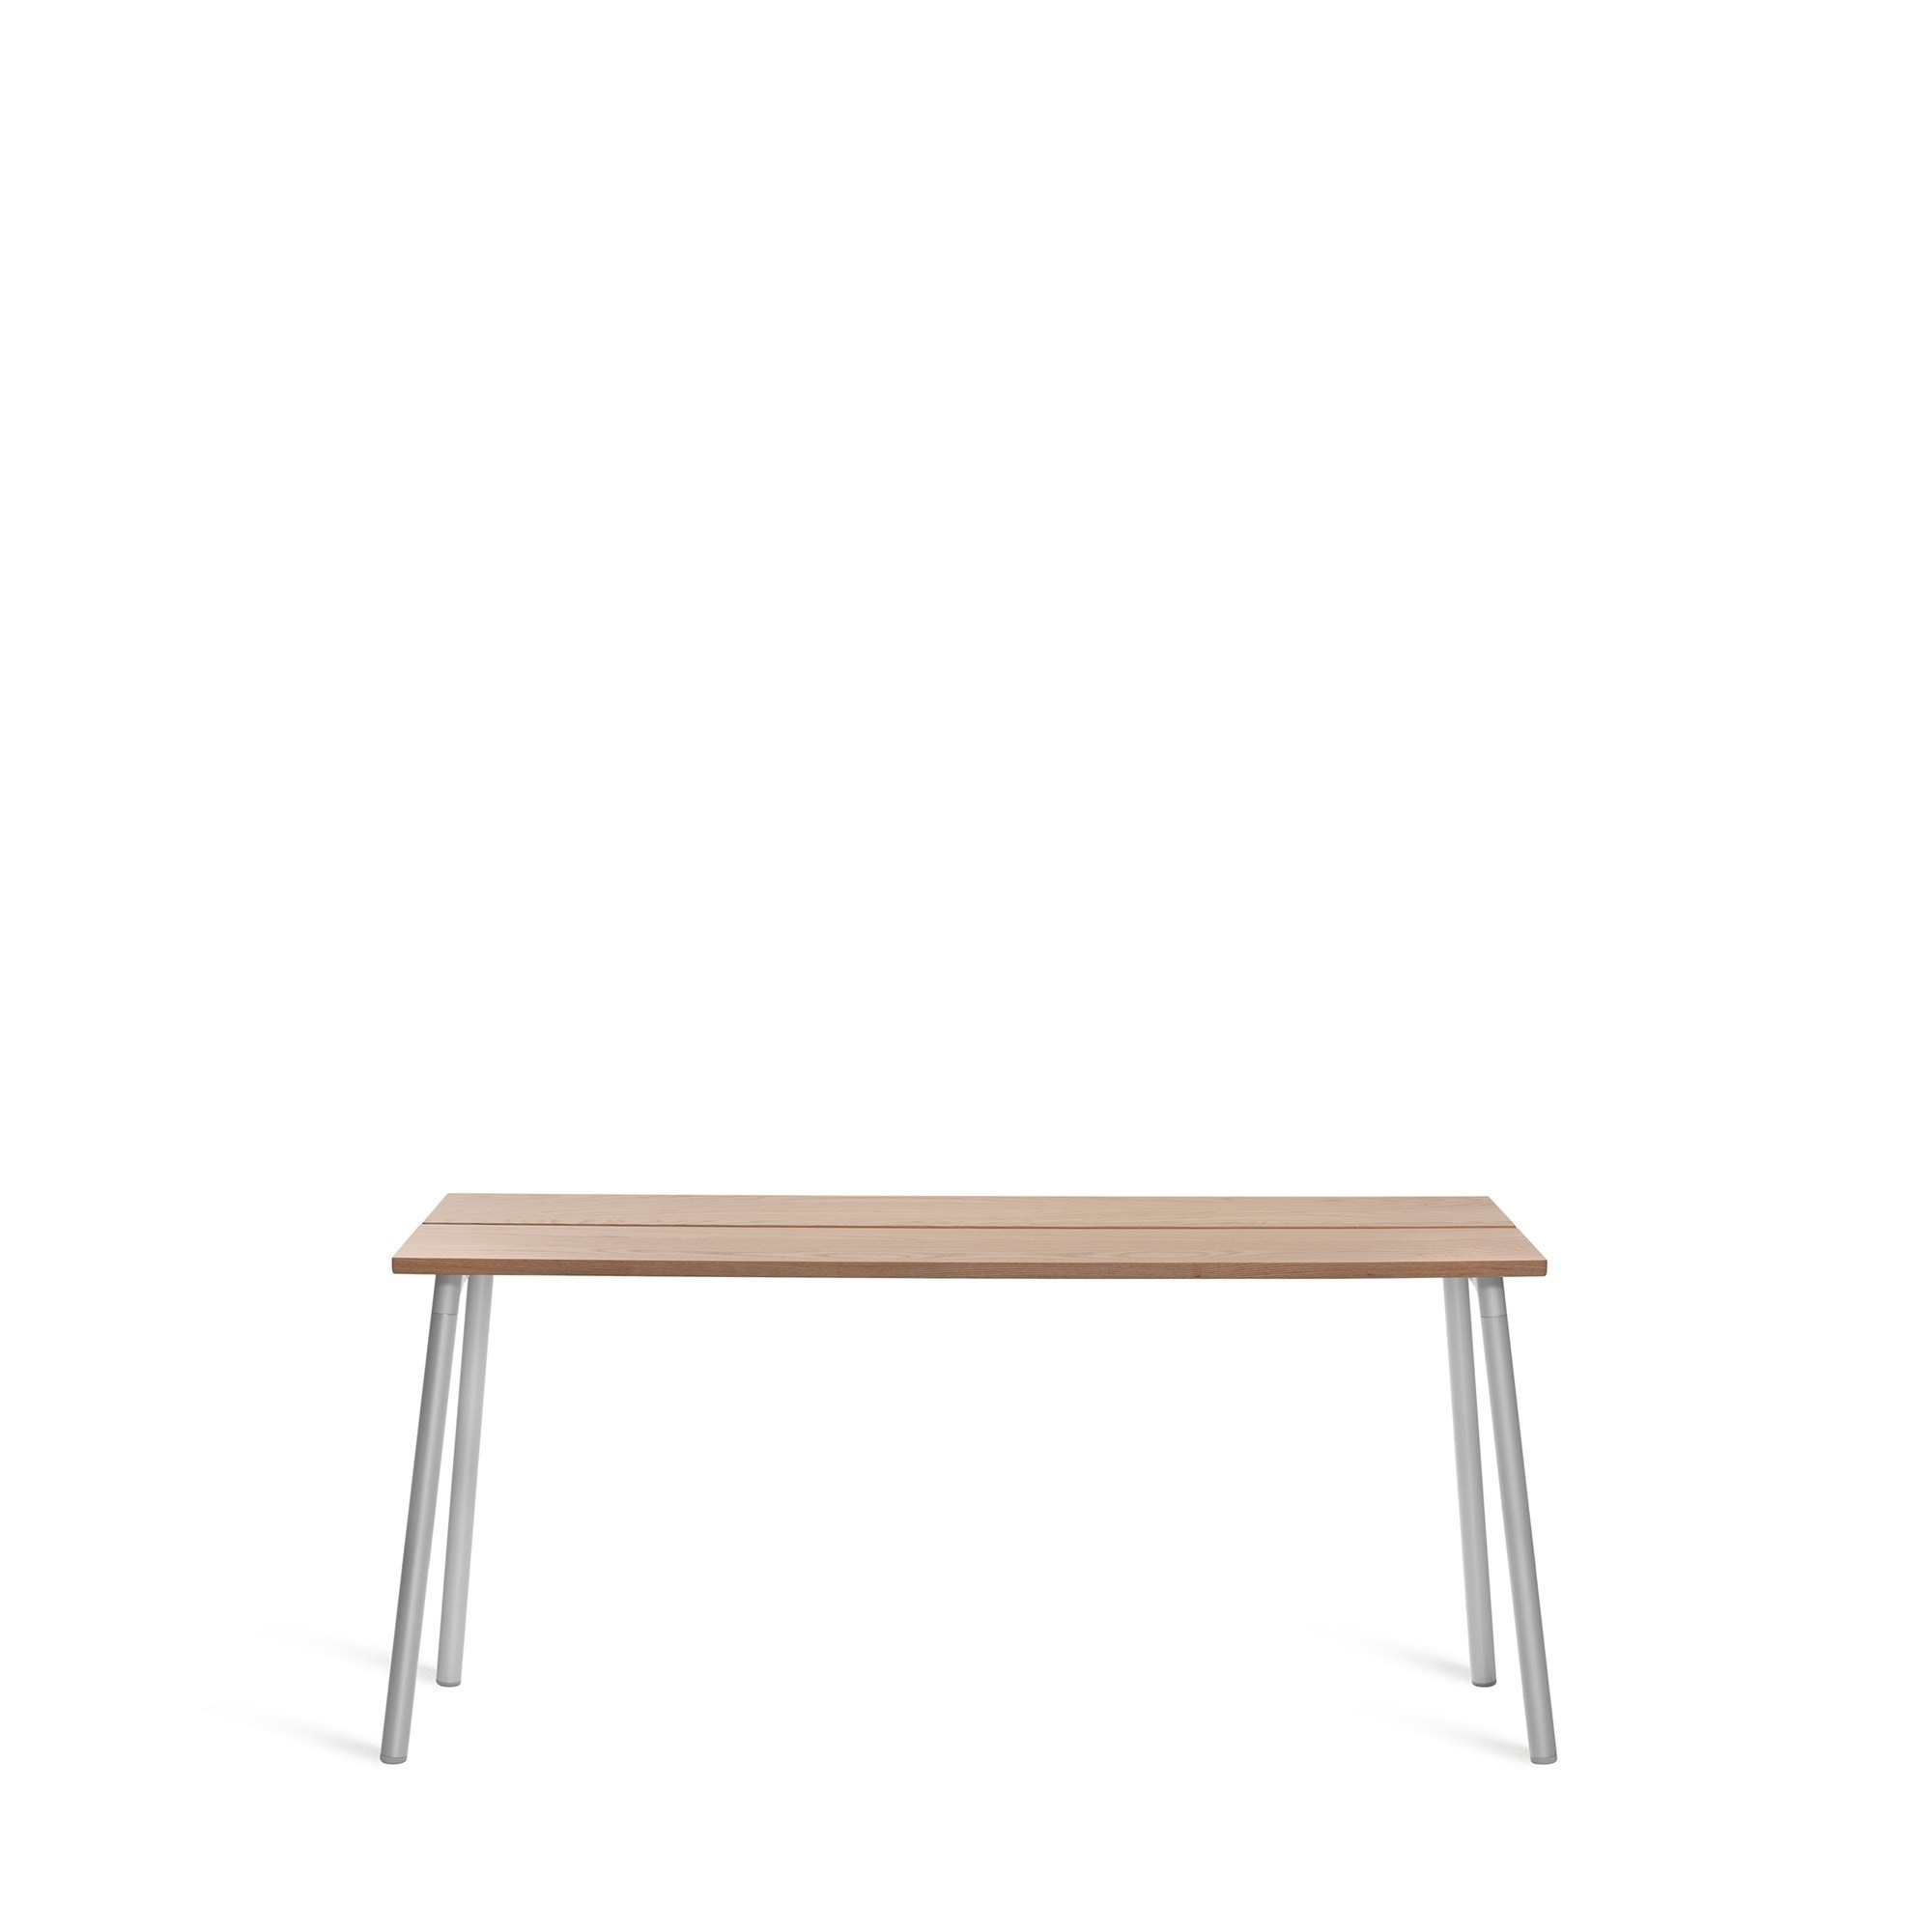 Emeco Run Side Table 86 Inch